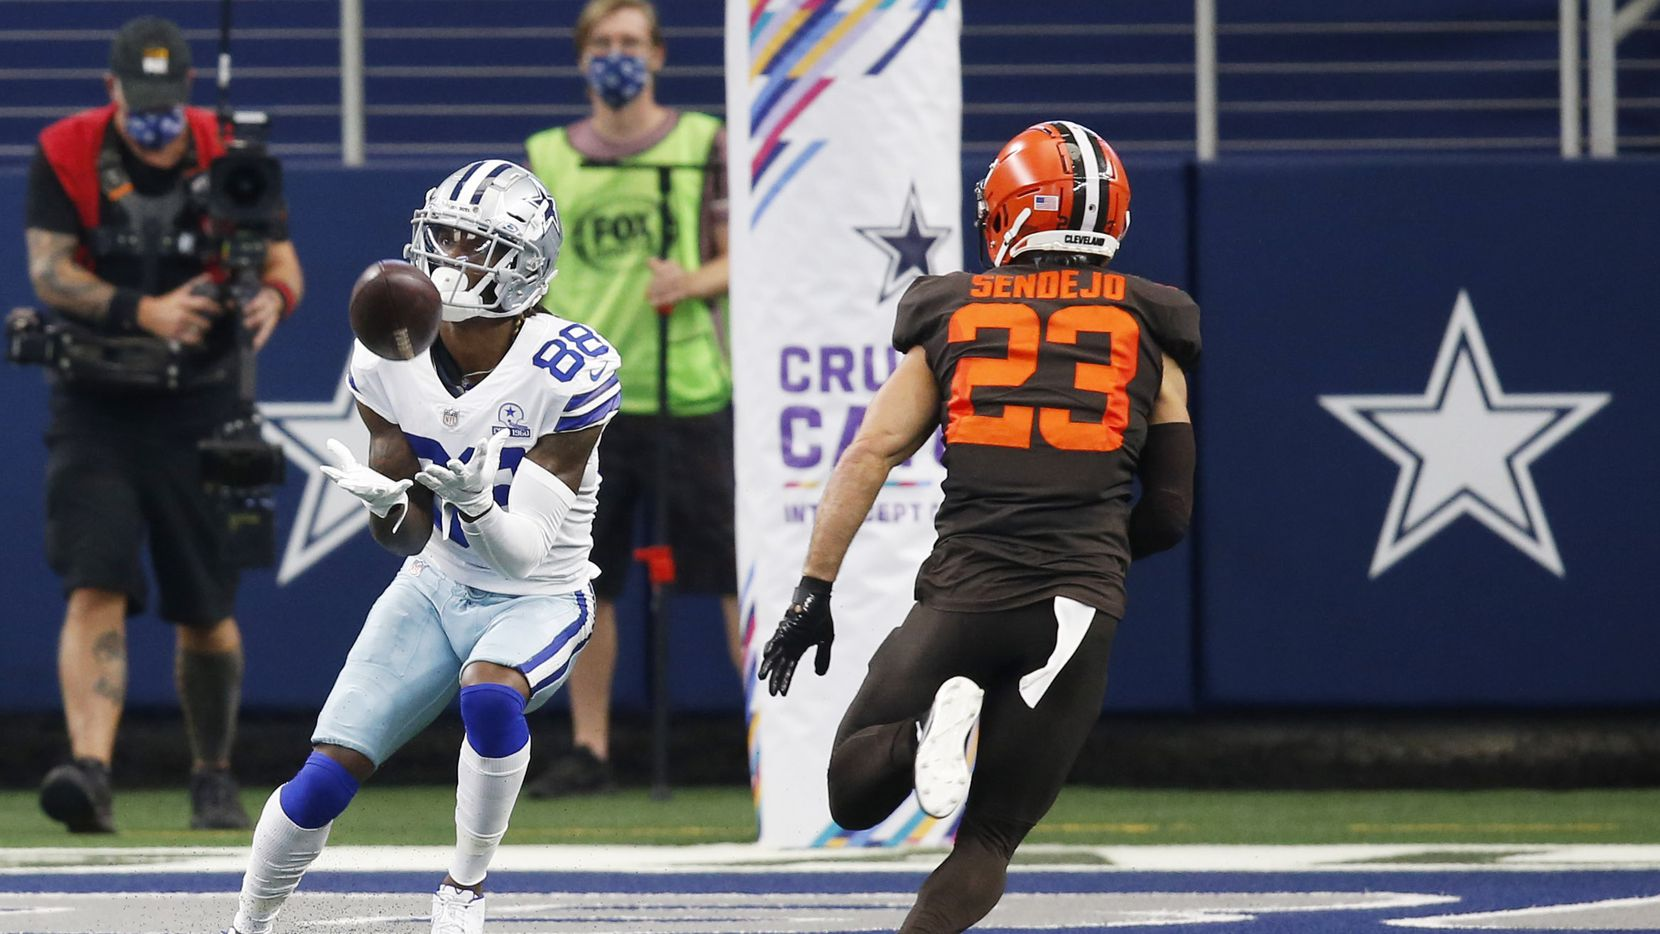 Dallas Cowboys wide receiver CeeDee Lamb (88) catches a pass for a touchdown in front of Cleveland Browns free safety Andrew Sendejo (23) during the first quarter of play at AT&T Stadium in Arlington, Texas on Saturday, October 4, 2020. (Vernon Bryant/The Dallas Morning News)